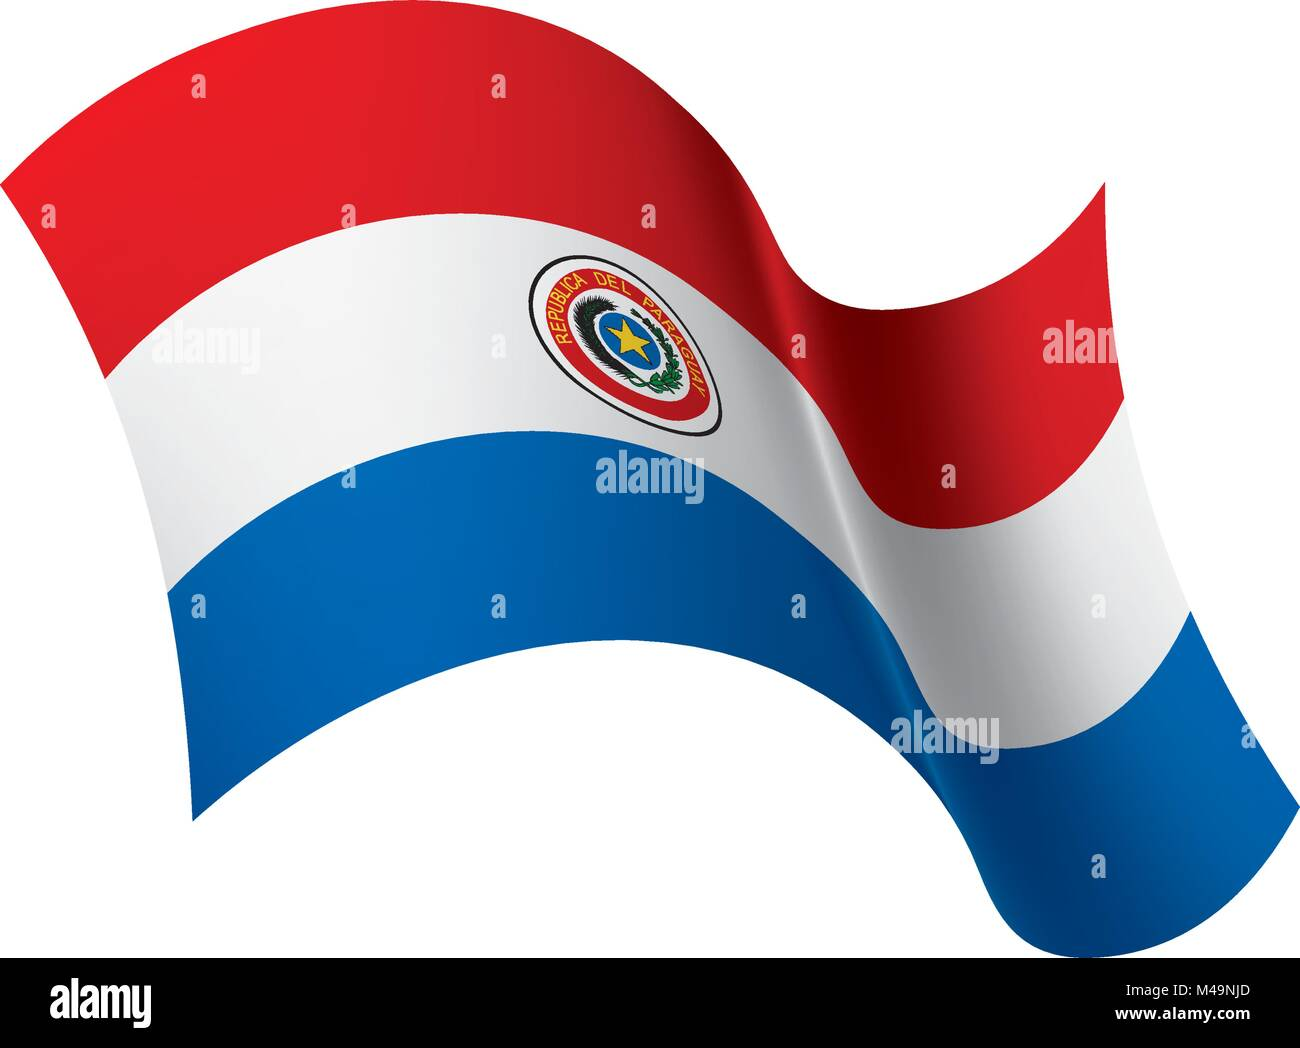 Paraguay flag symbol meaning image collections symbol and sign ideas flag red fist stock photos flag red fist stock images alamy paraguay flag vector illustration stock buycottarizona Choice Image